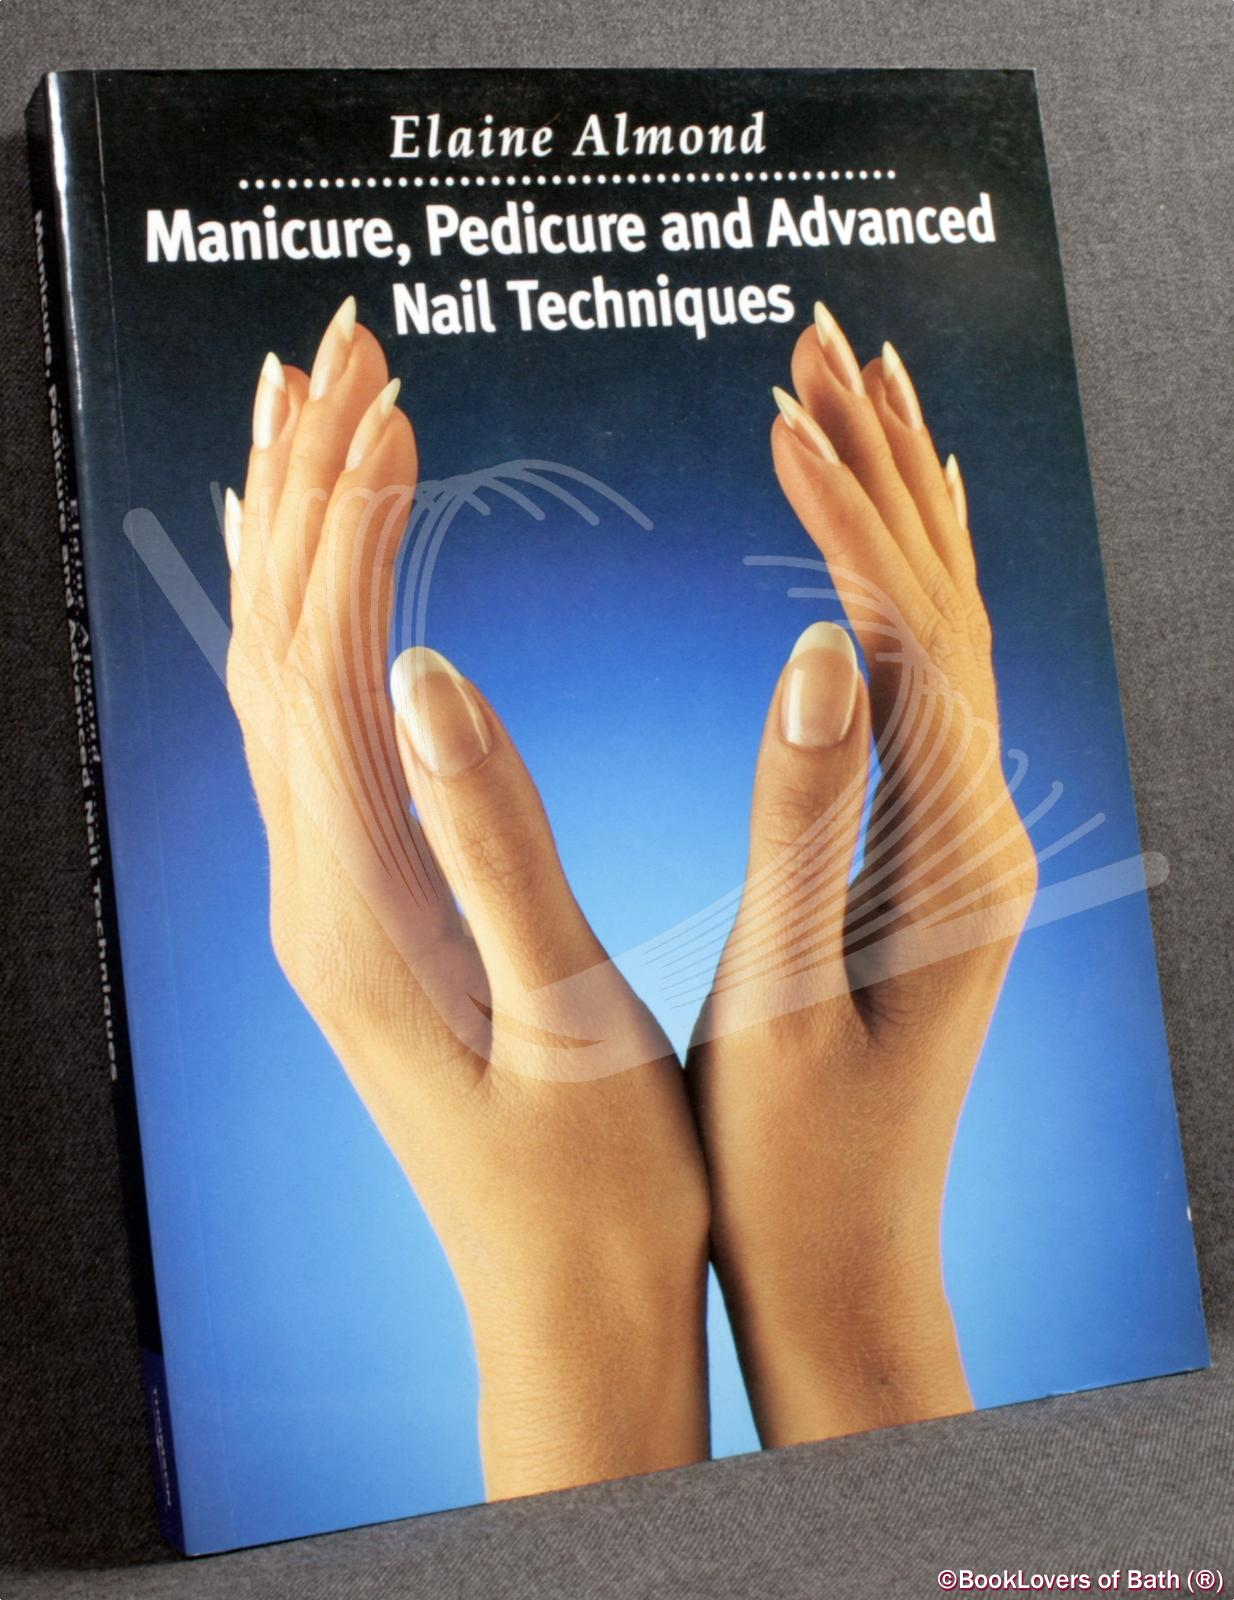 Manicure, Pedicure and Advanced Nail Techniques - Elaine Almond